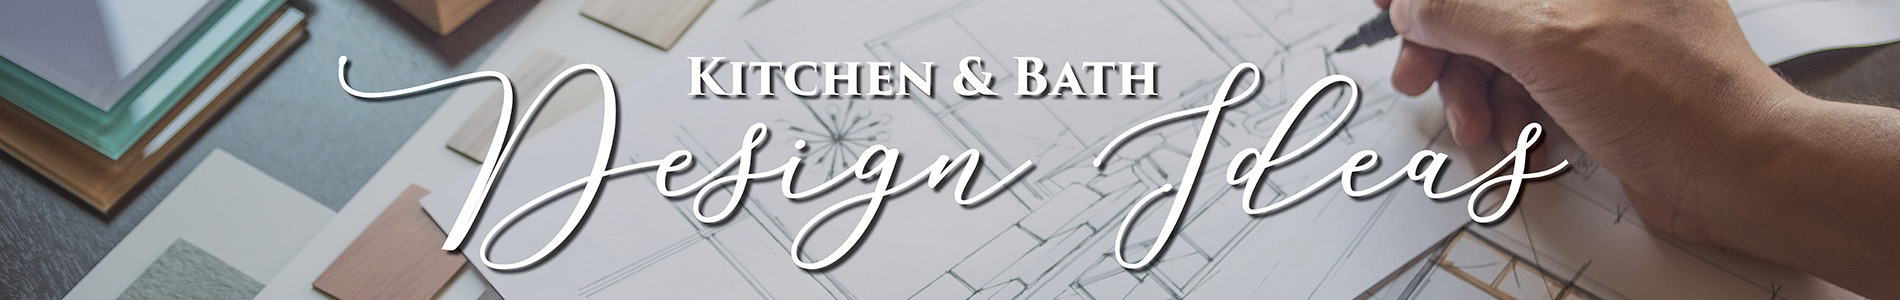 Kitchen and Bathroom design ideas from Flooring USA